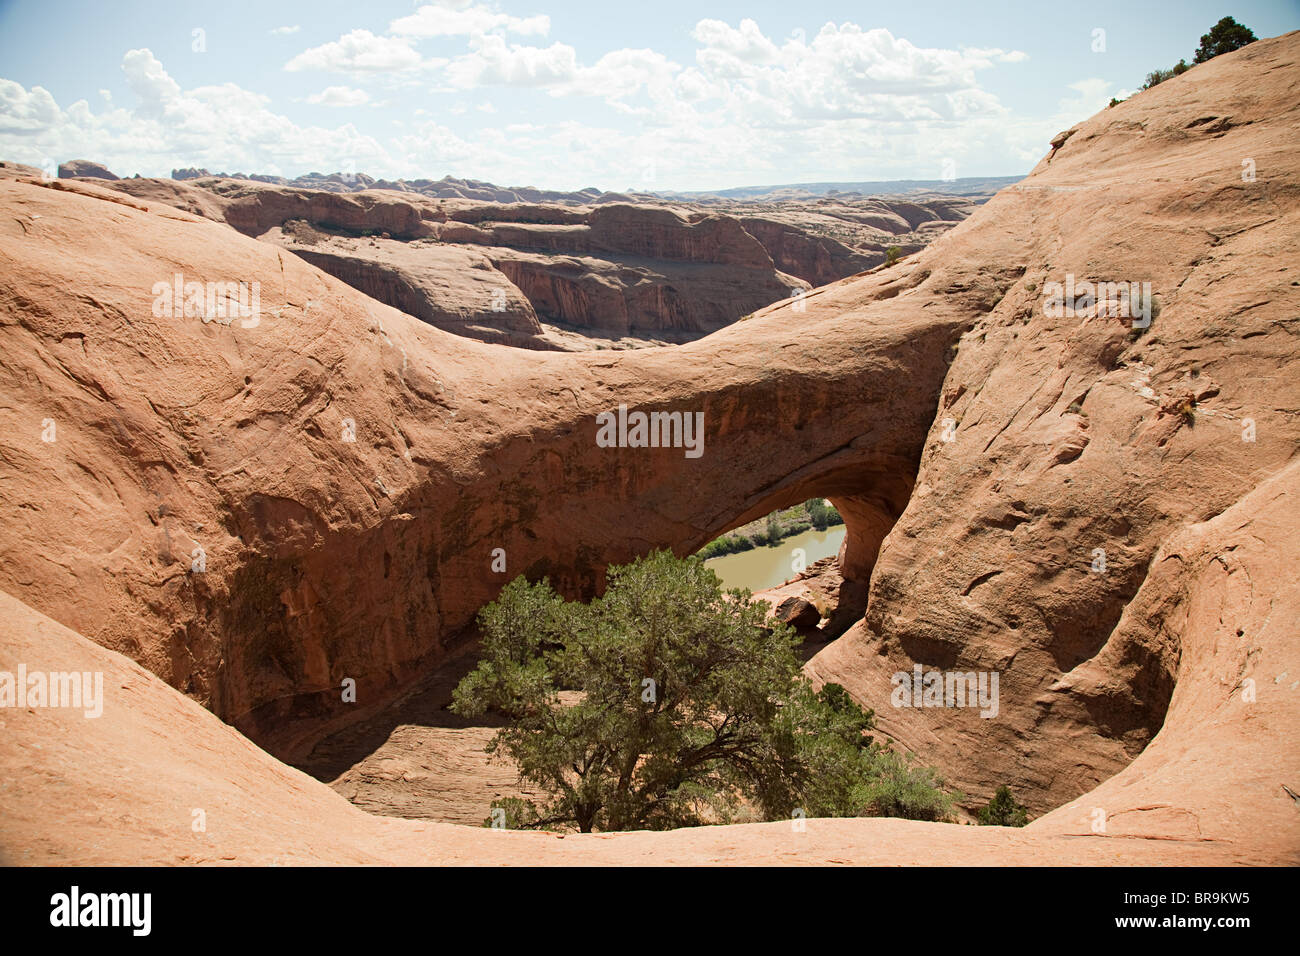 Jeep trail through Arches National Park, Moab, Utah, USA - Stock Image